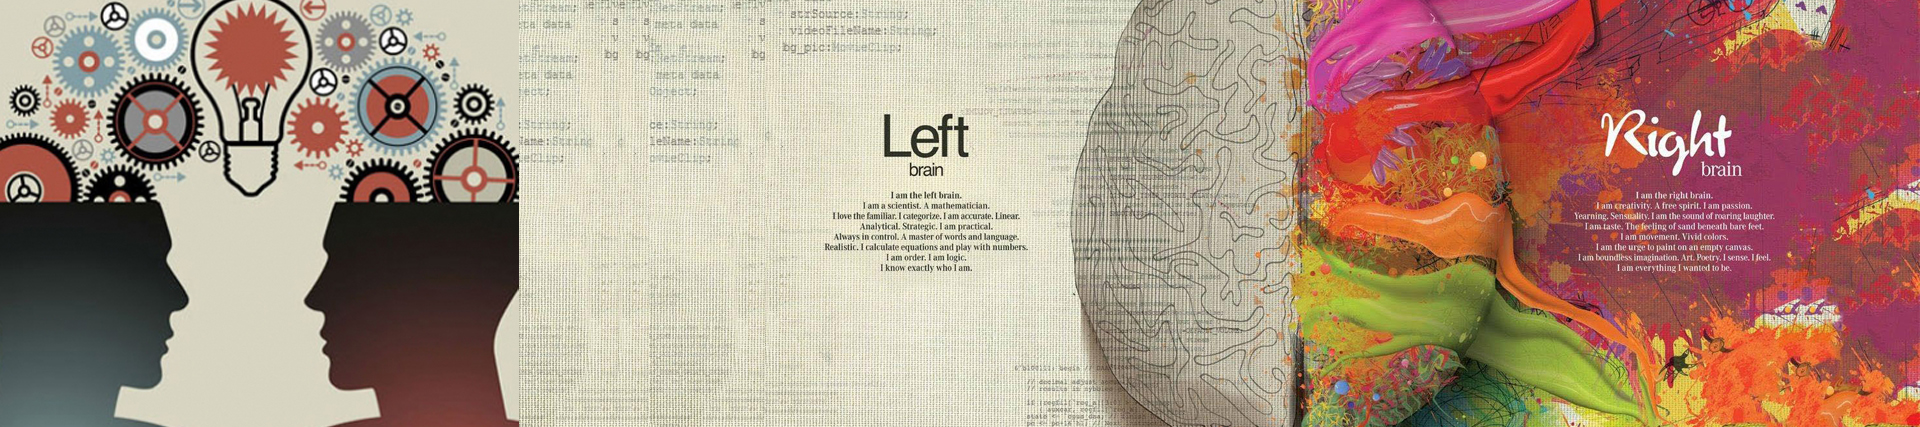 Left right brain theory